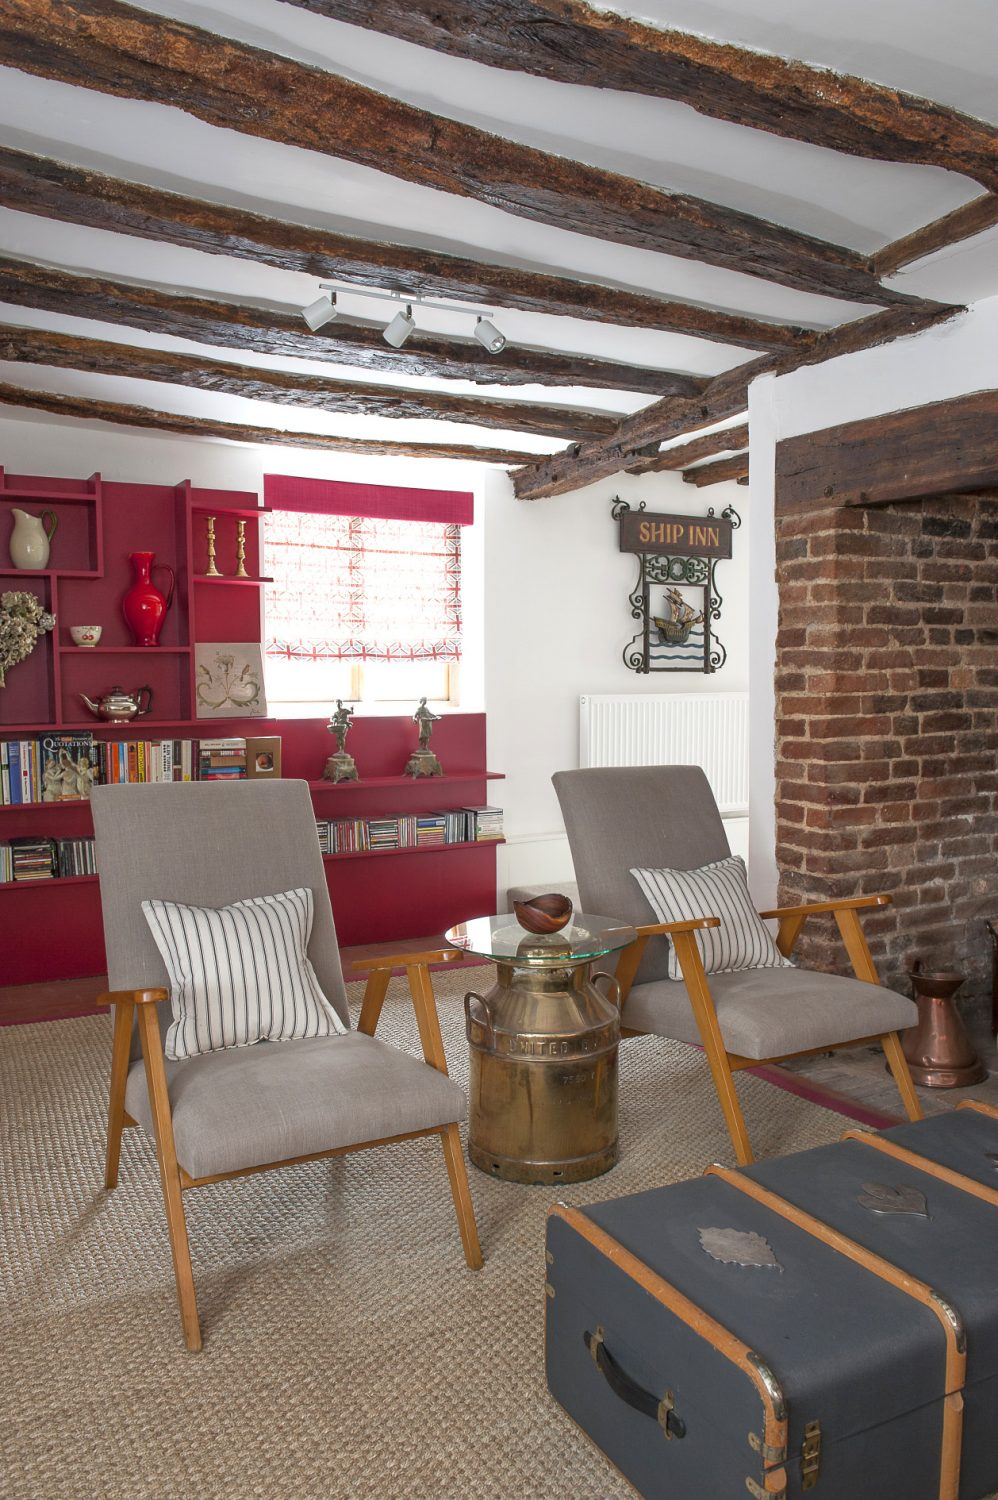 The sitting room has a large inglenook fireplace